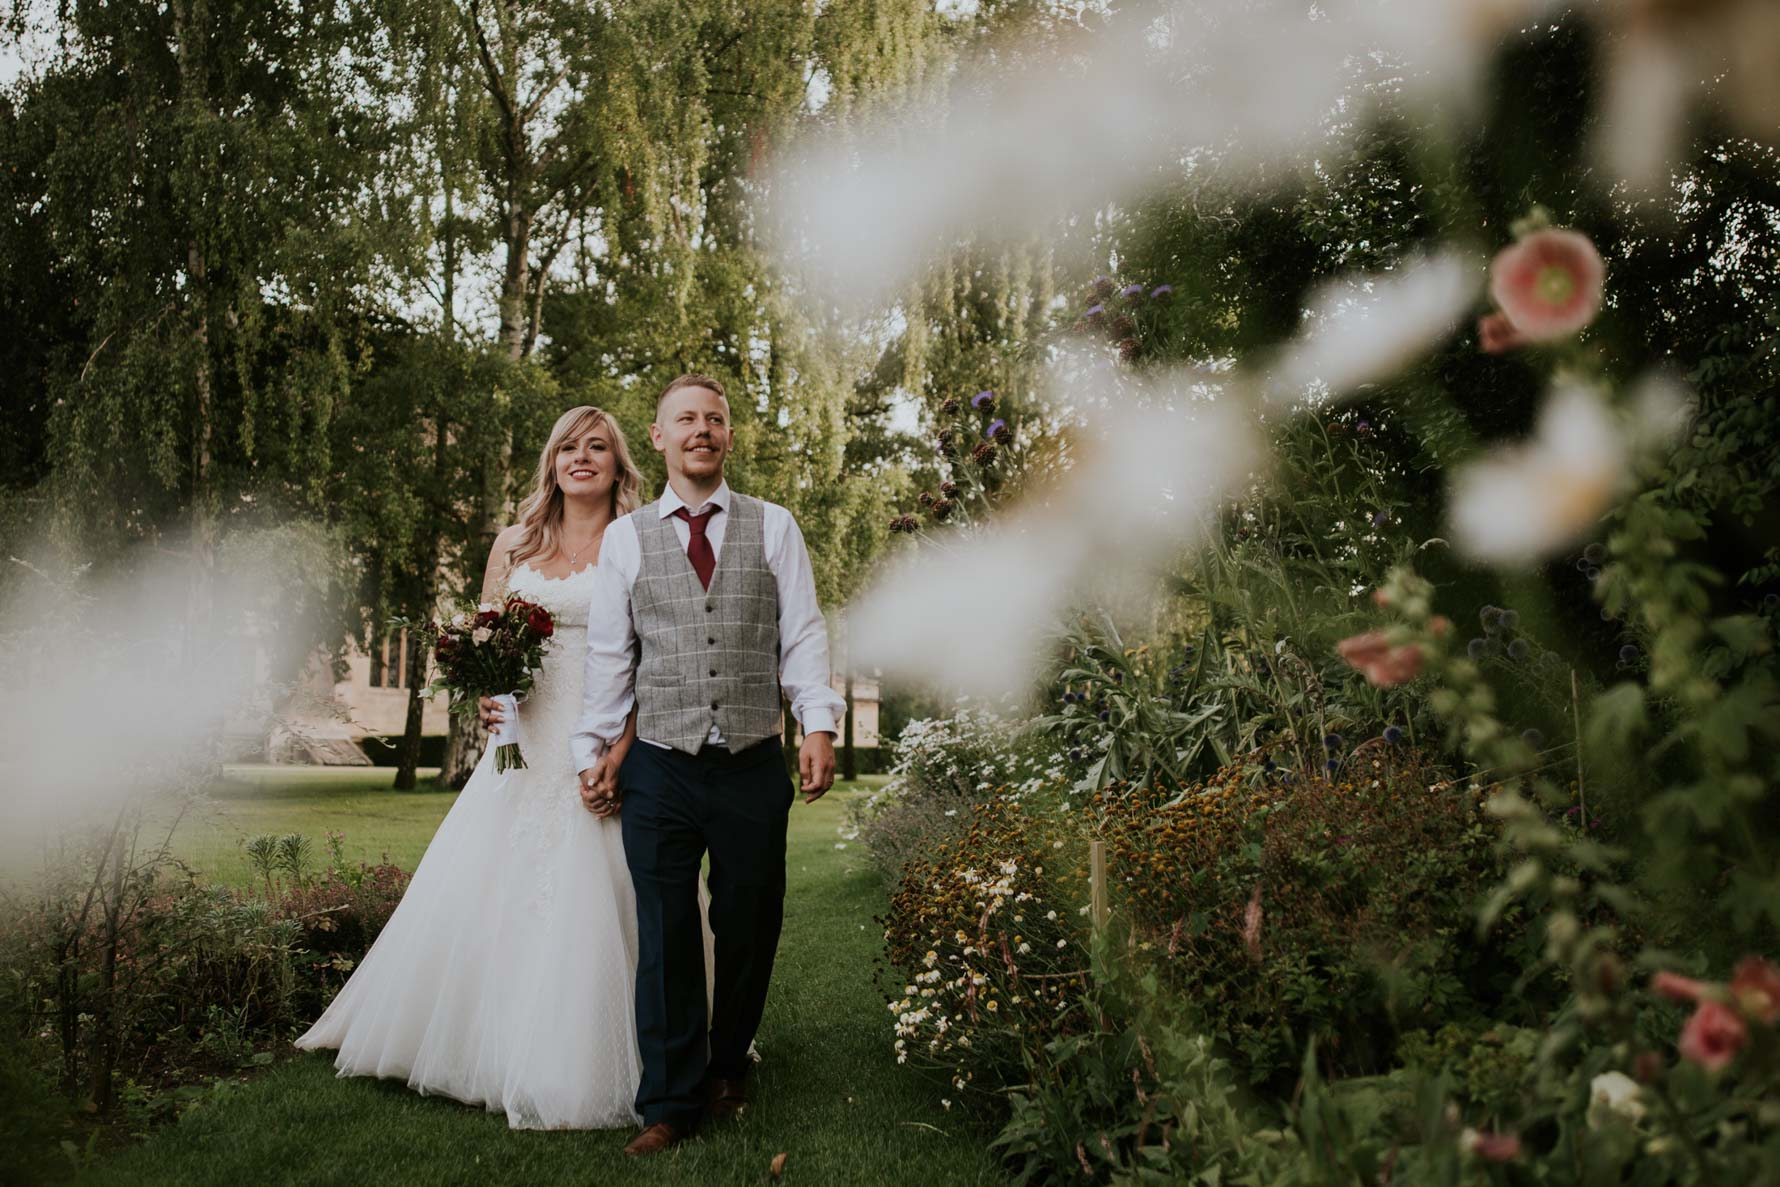 bride and groom walking through a garden - natural portraits